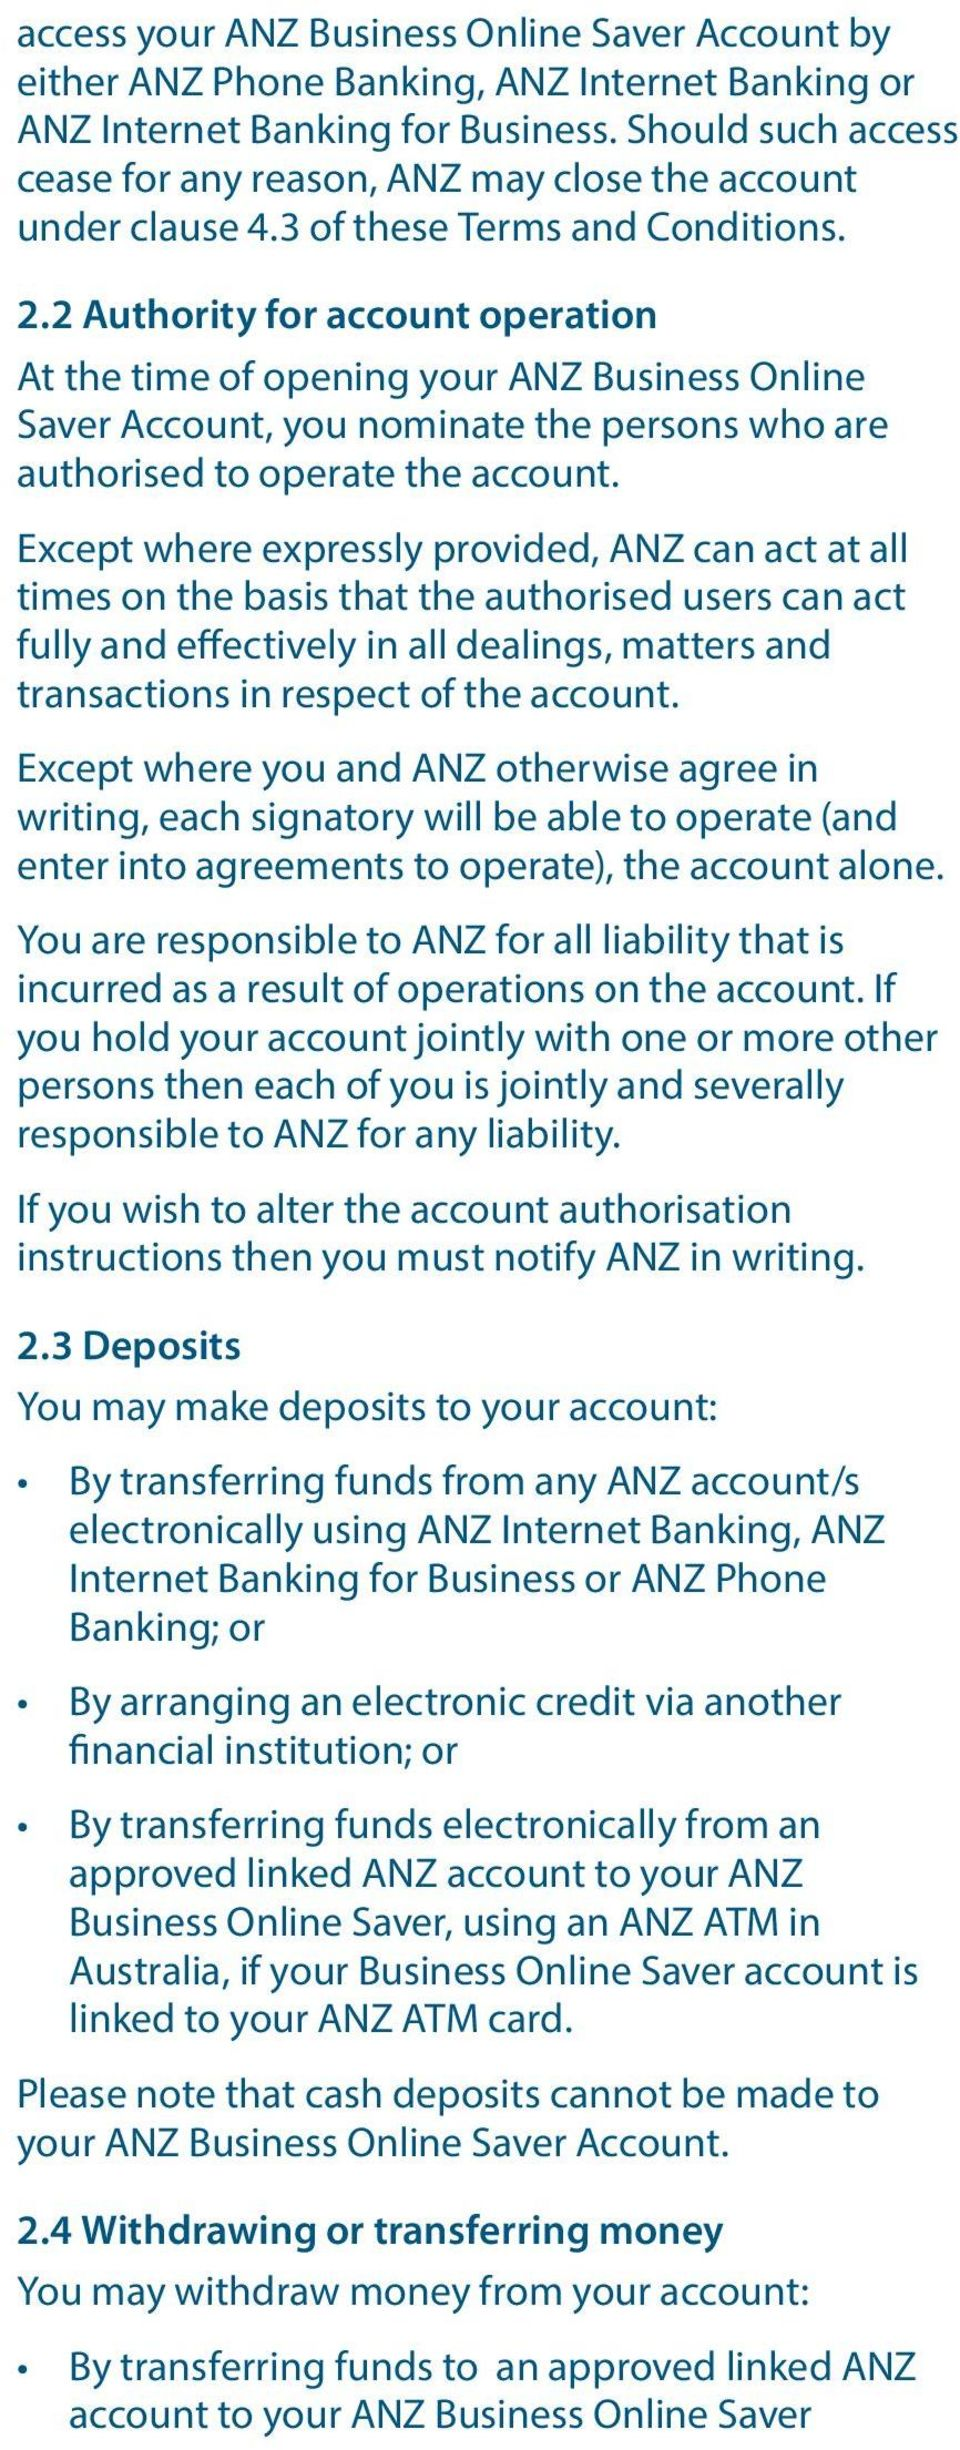 2 Authority for account operation At the time of opening your ANZ Business Online Saver Account, you nominate the persons who are authorised to operate the account.